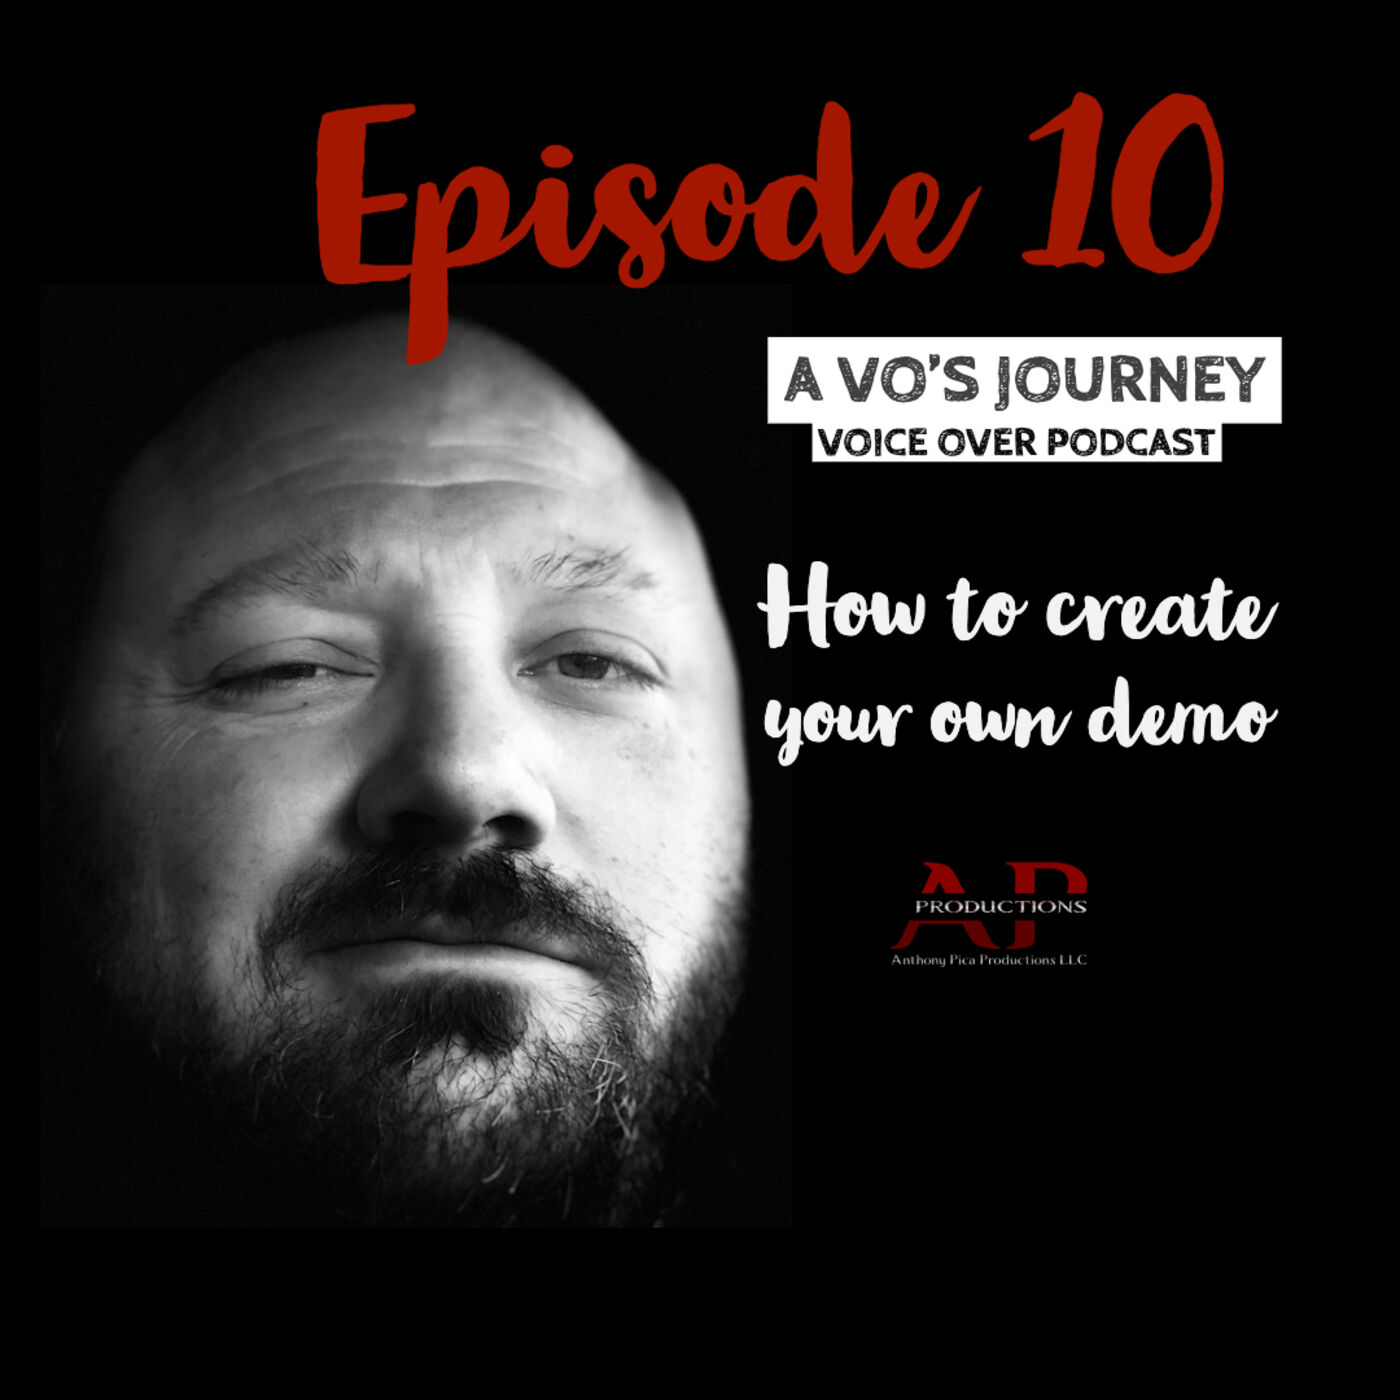 Ep. 10: HOW TO CREATE YOUR OWN DEMO